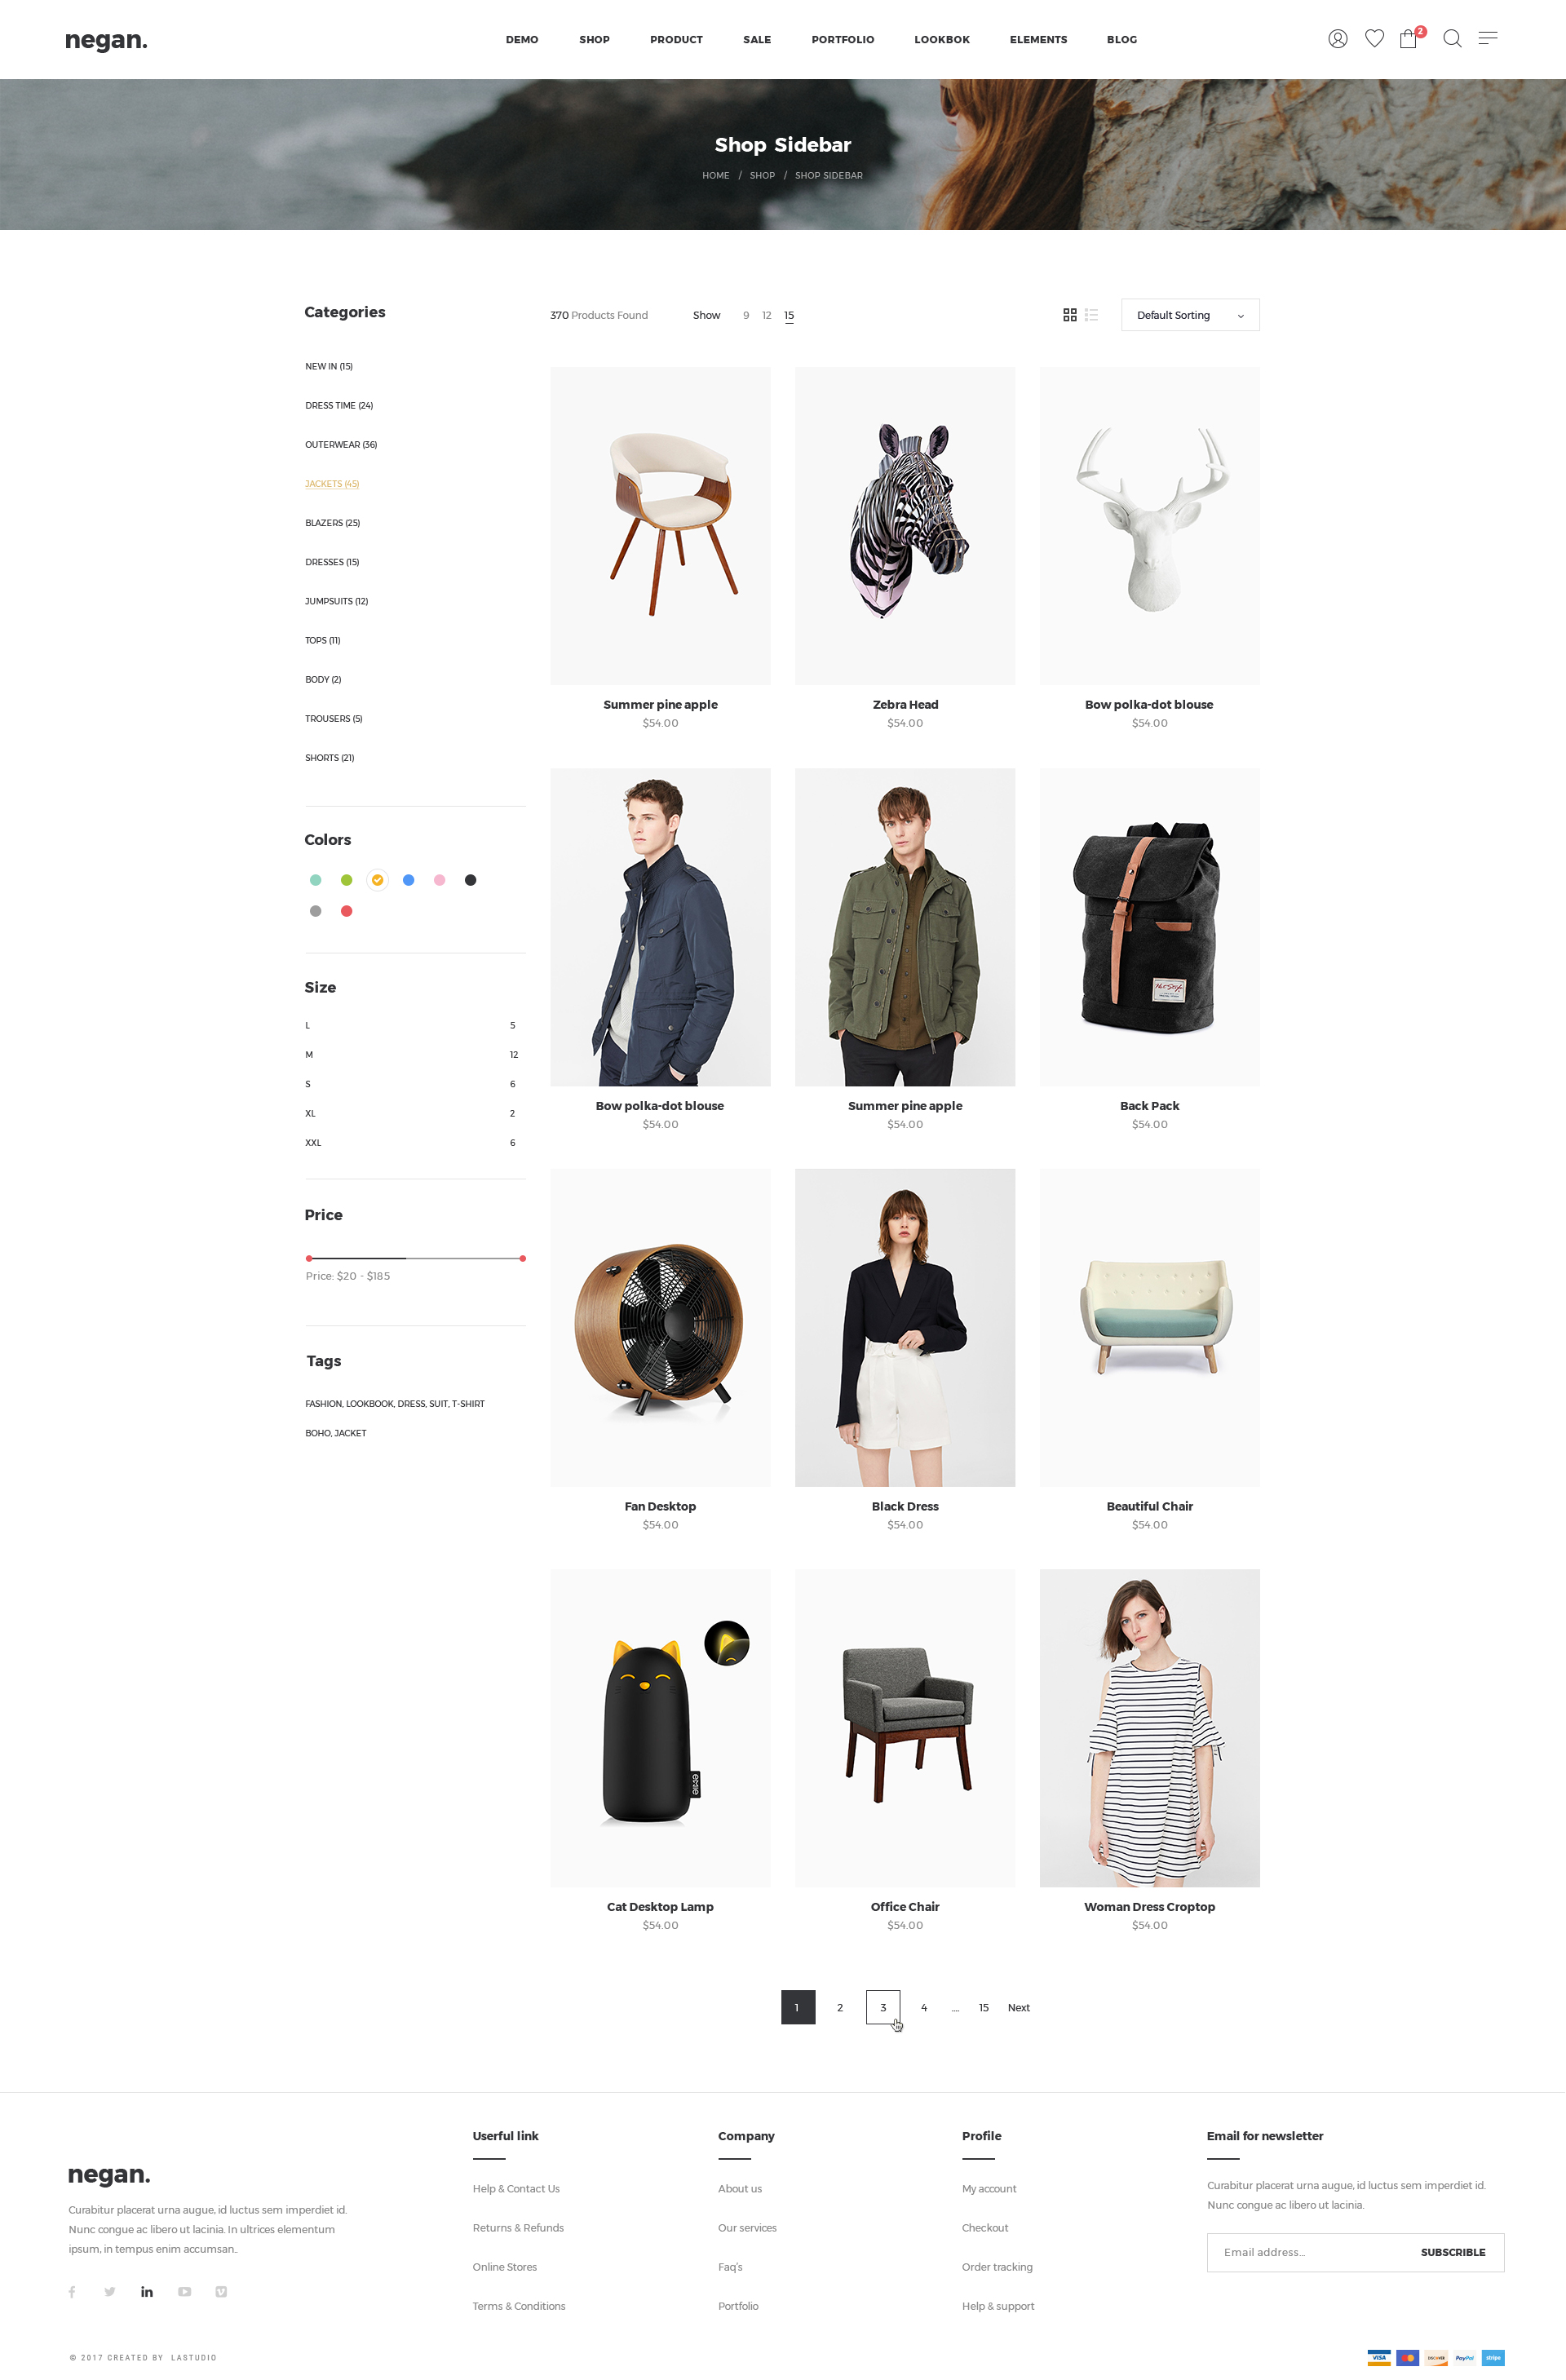 Negan - Clean, Minimal eCommerce PSD Templates by LA